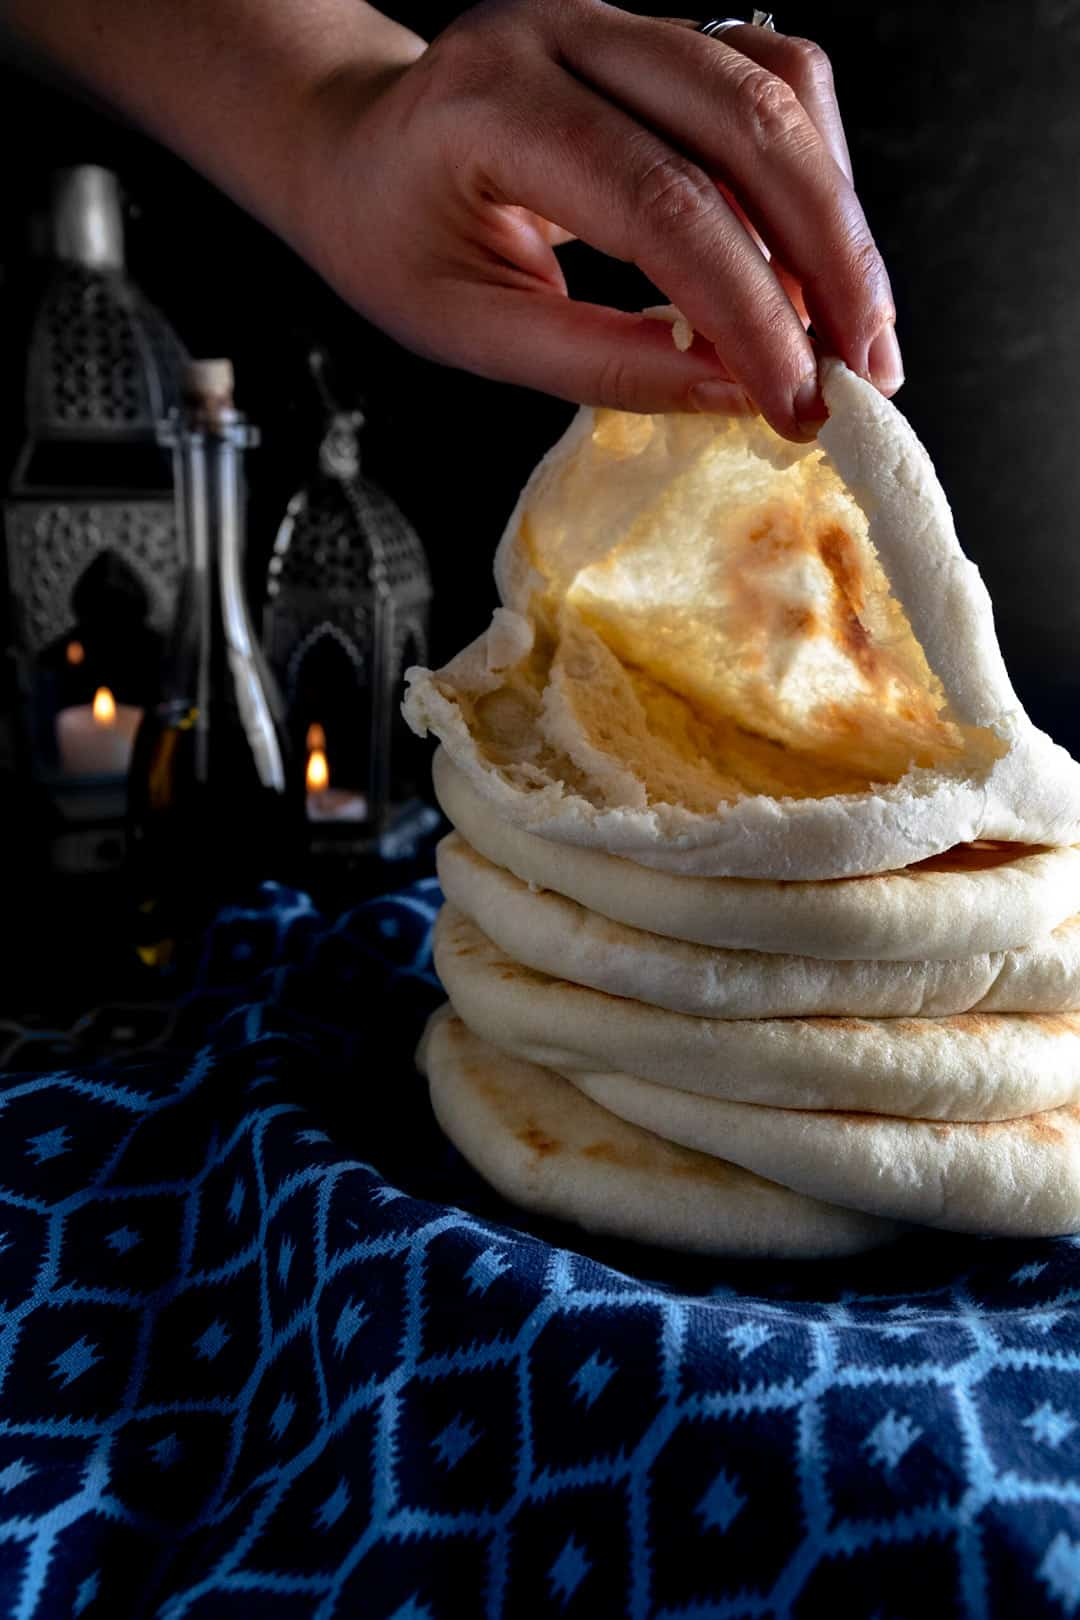 A stack of freshly baked pita bread on blue linen with the top one ripped and held open with a hand to reveal the perfect pocket. Candle lanterns are lit in the background.